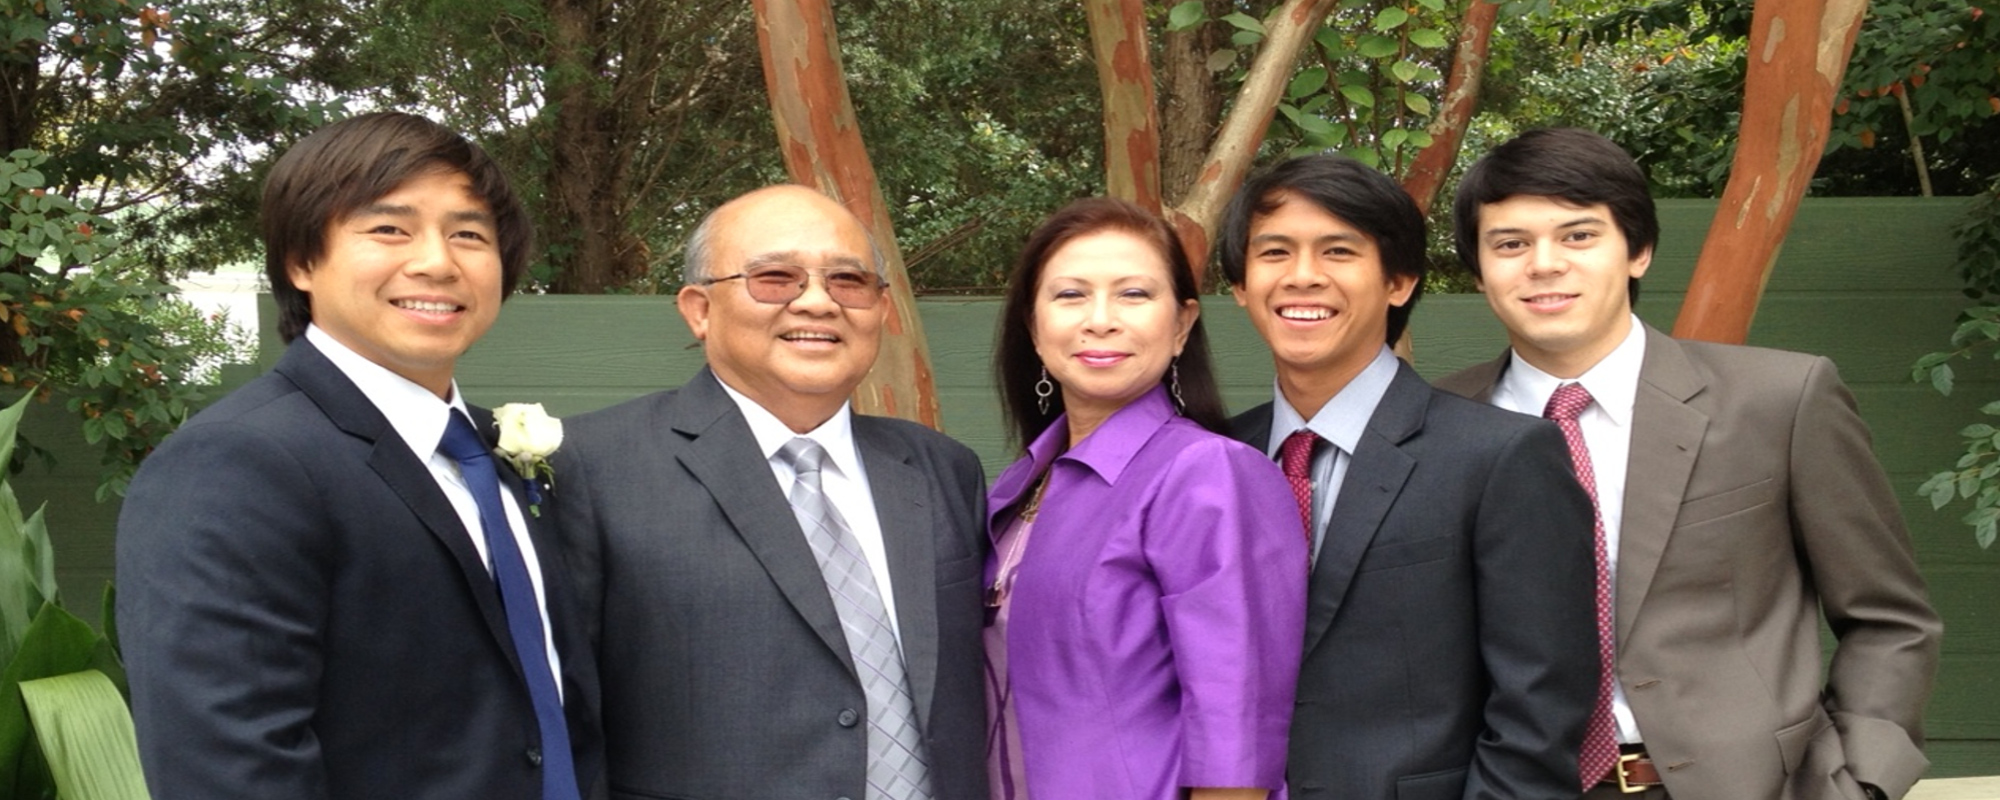 Dr. Intaphan and Family